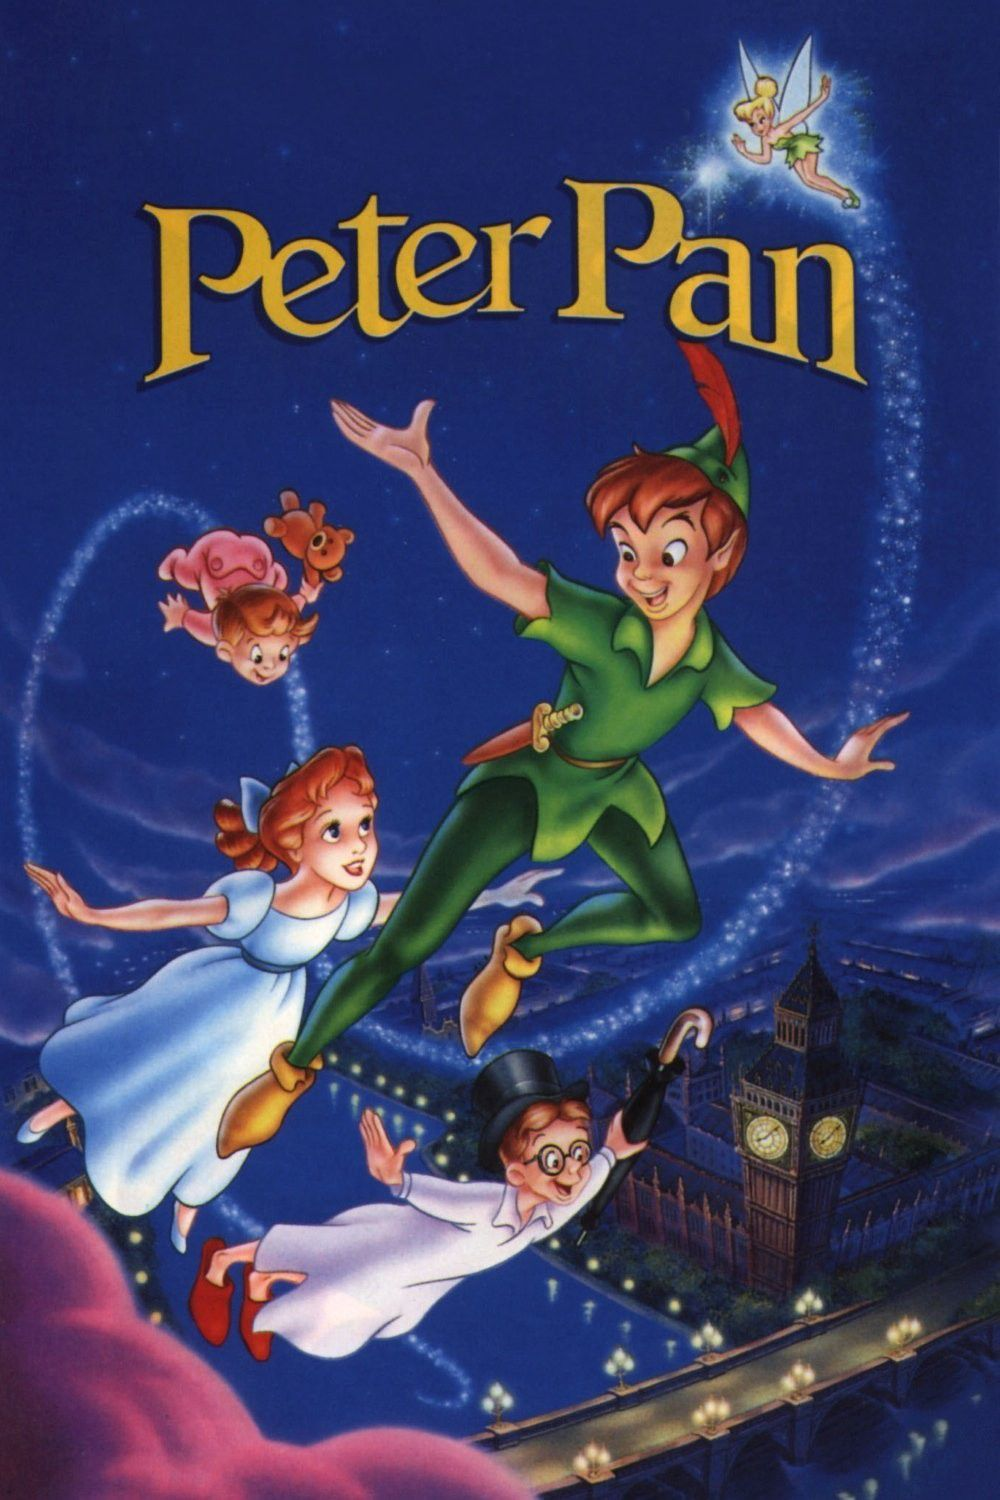 Peter Pan (film, 1953)